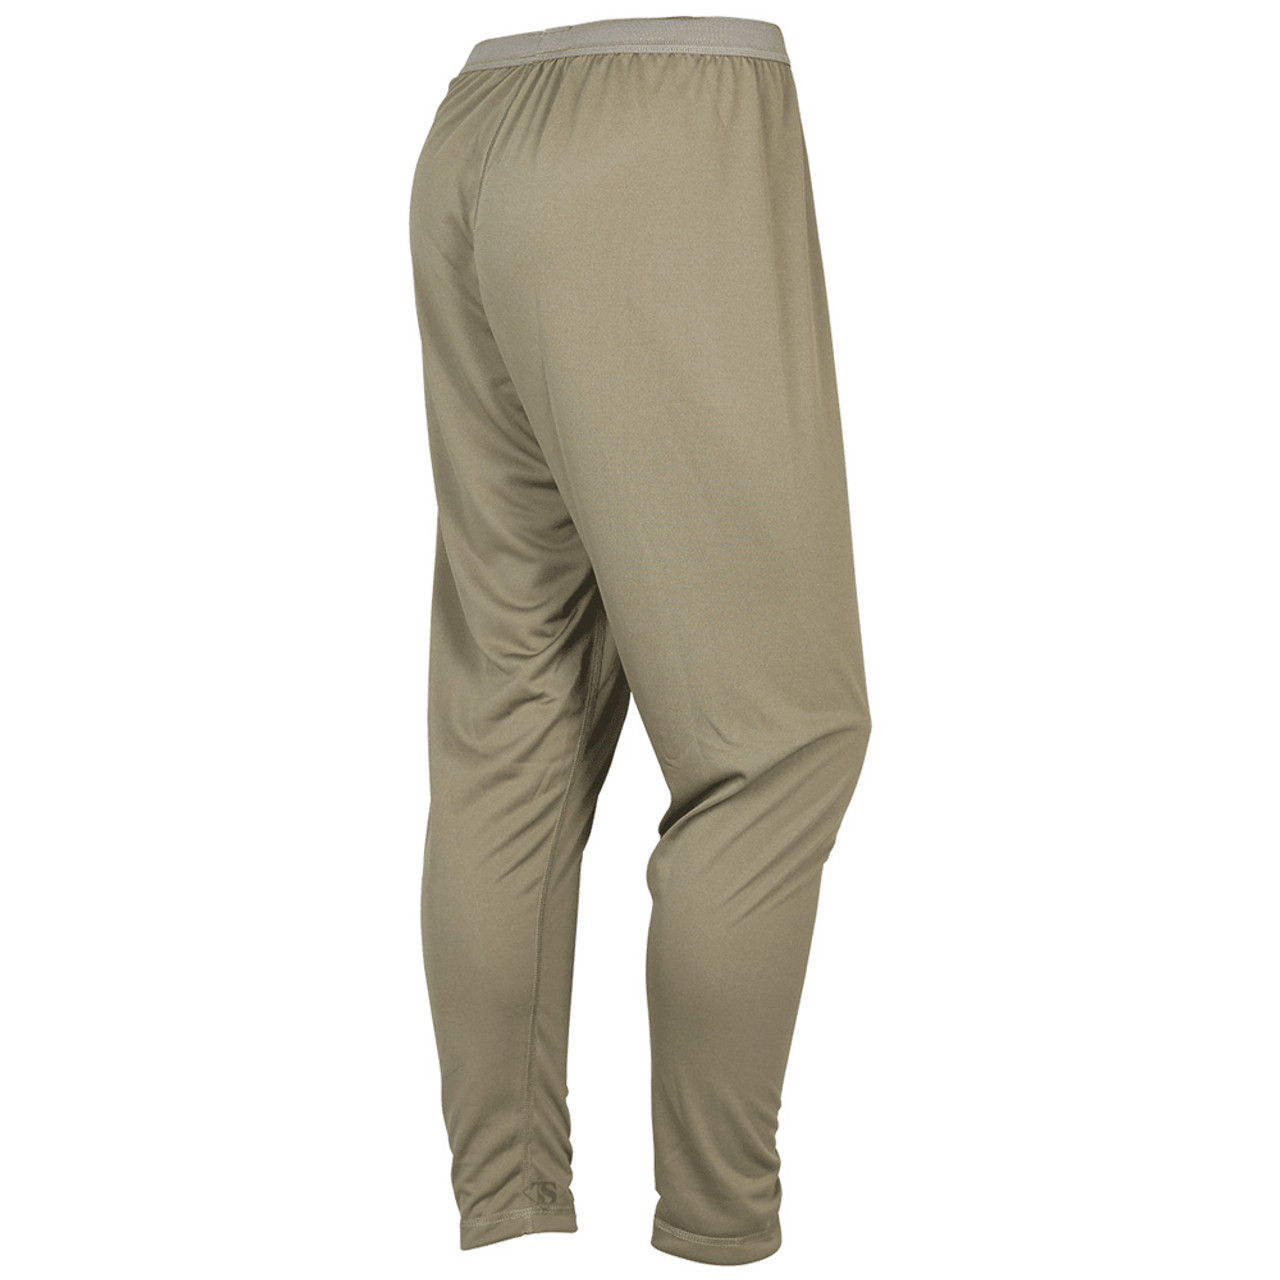 Tru-Spec GEN-III ECWCS Level-1 Bottom Tactical Base Layer, Elastic waistband, quick drying and compresses to reduce volume when packed, available in Black, GI Desert Sand, Tan499 and Coyote Brown